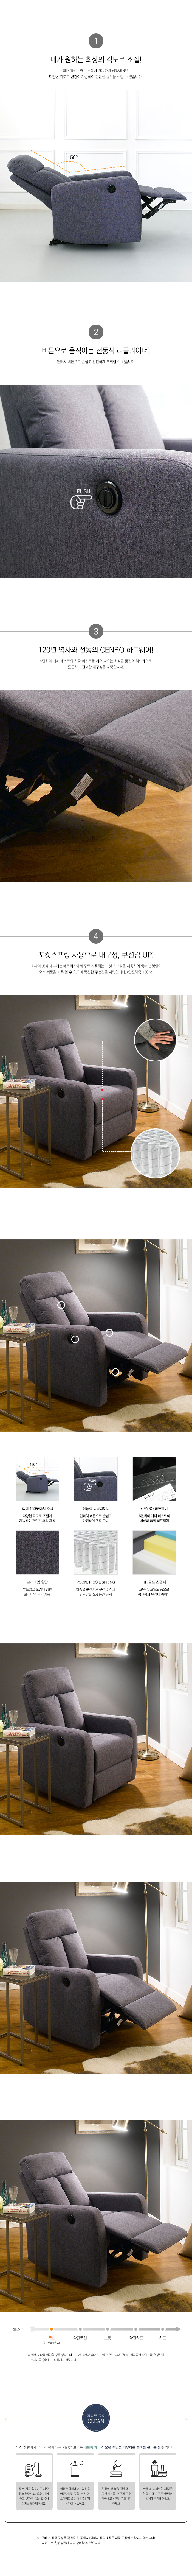 HEIM-Gray-Power-Recliner-Chair_180308_2.